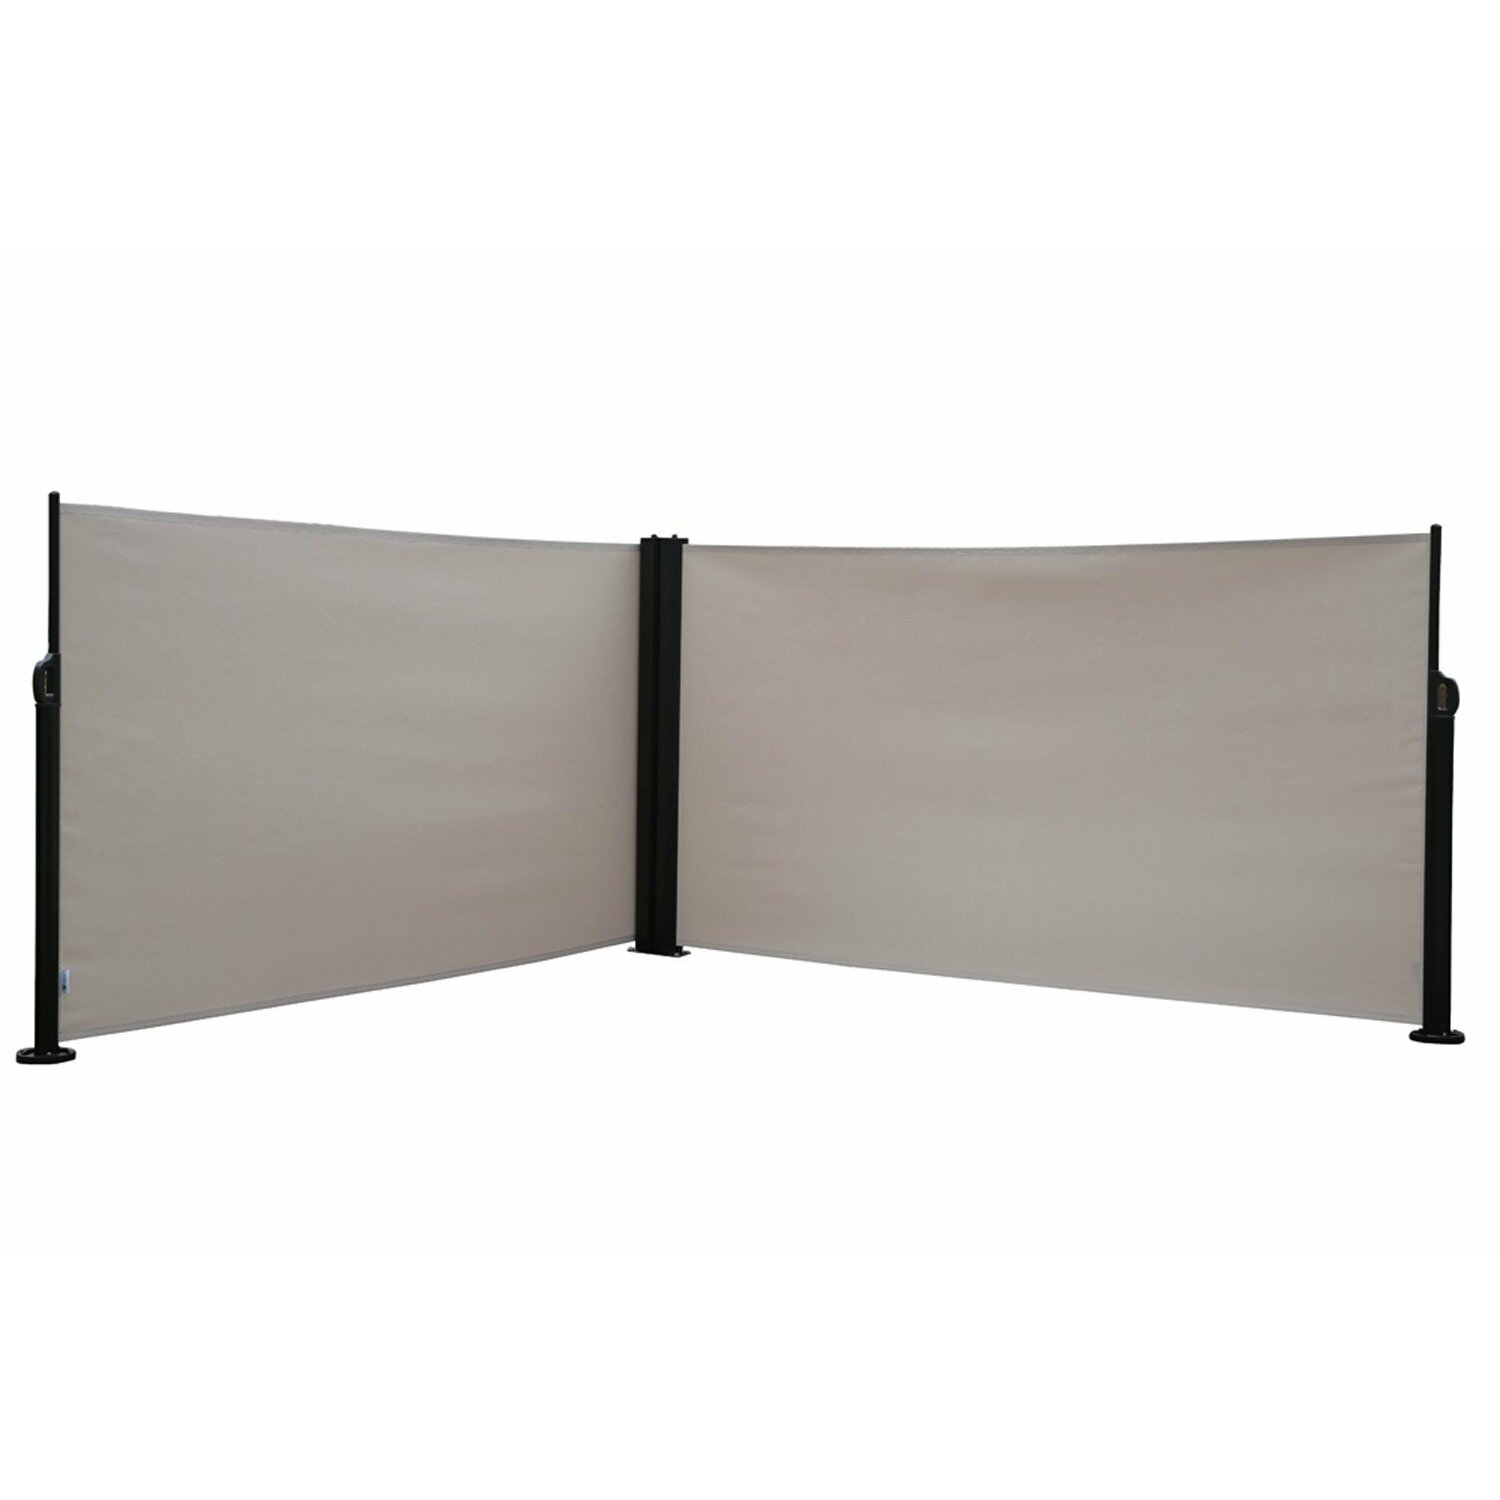 Abba patio 62 4 x 236 4 retractable folding screen fence for Retractable room divider residential